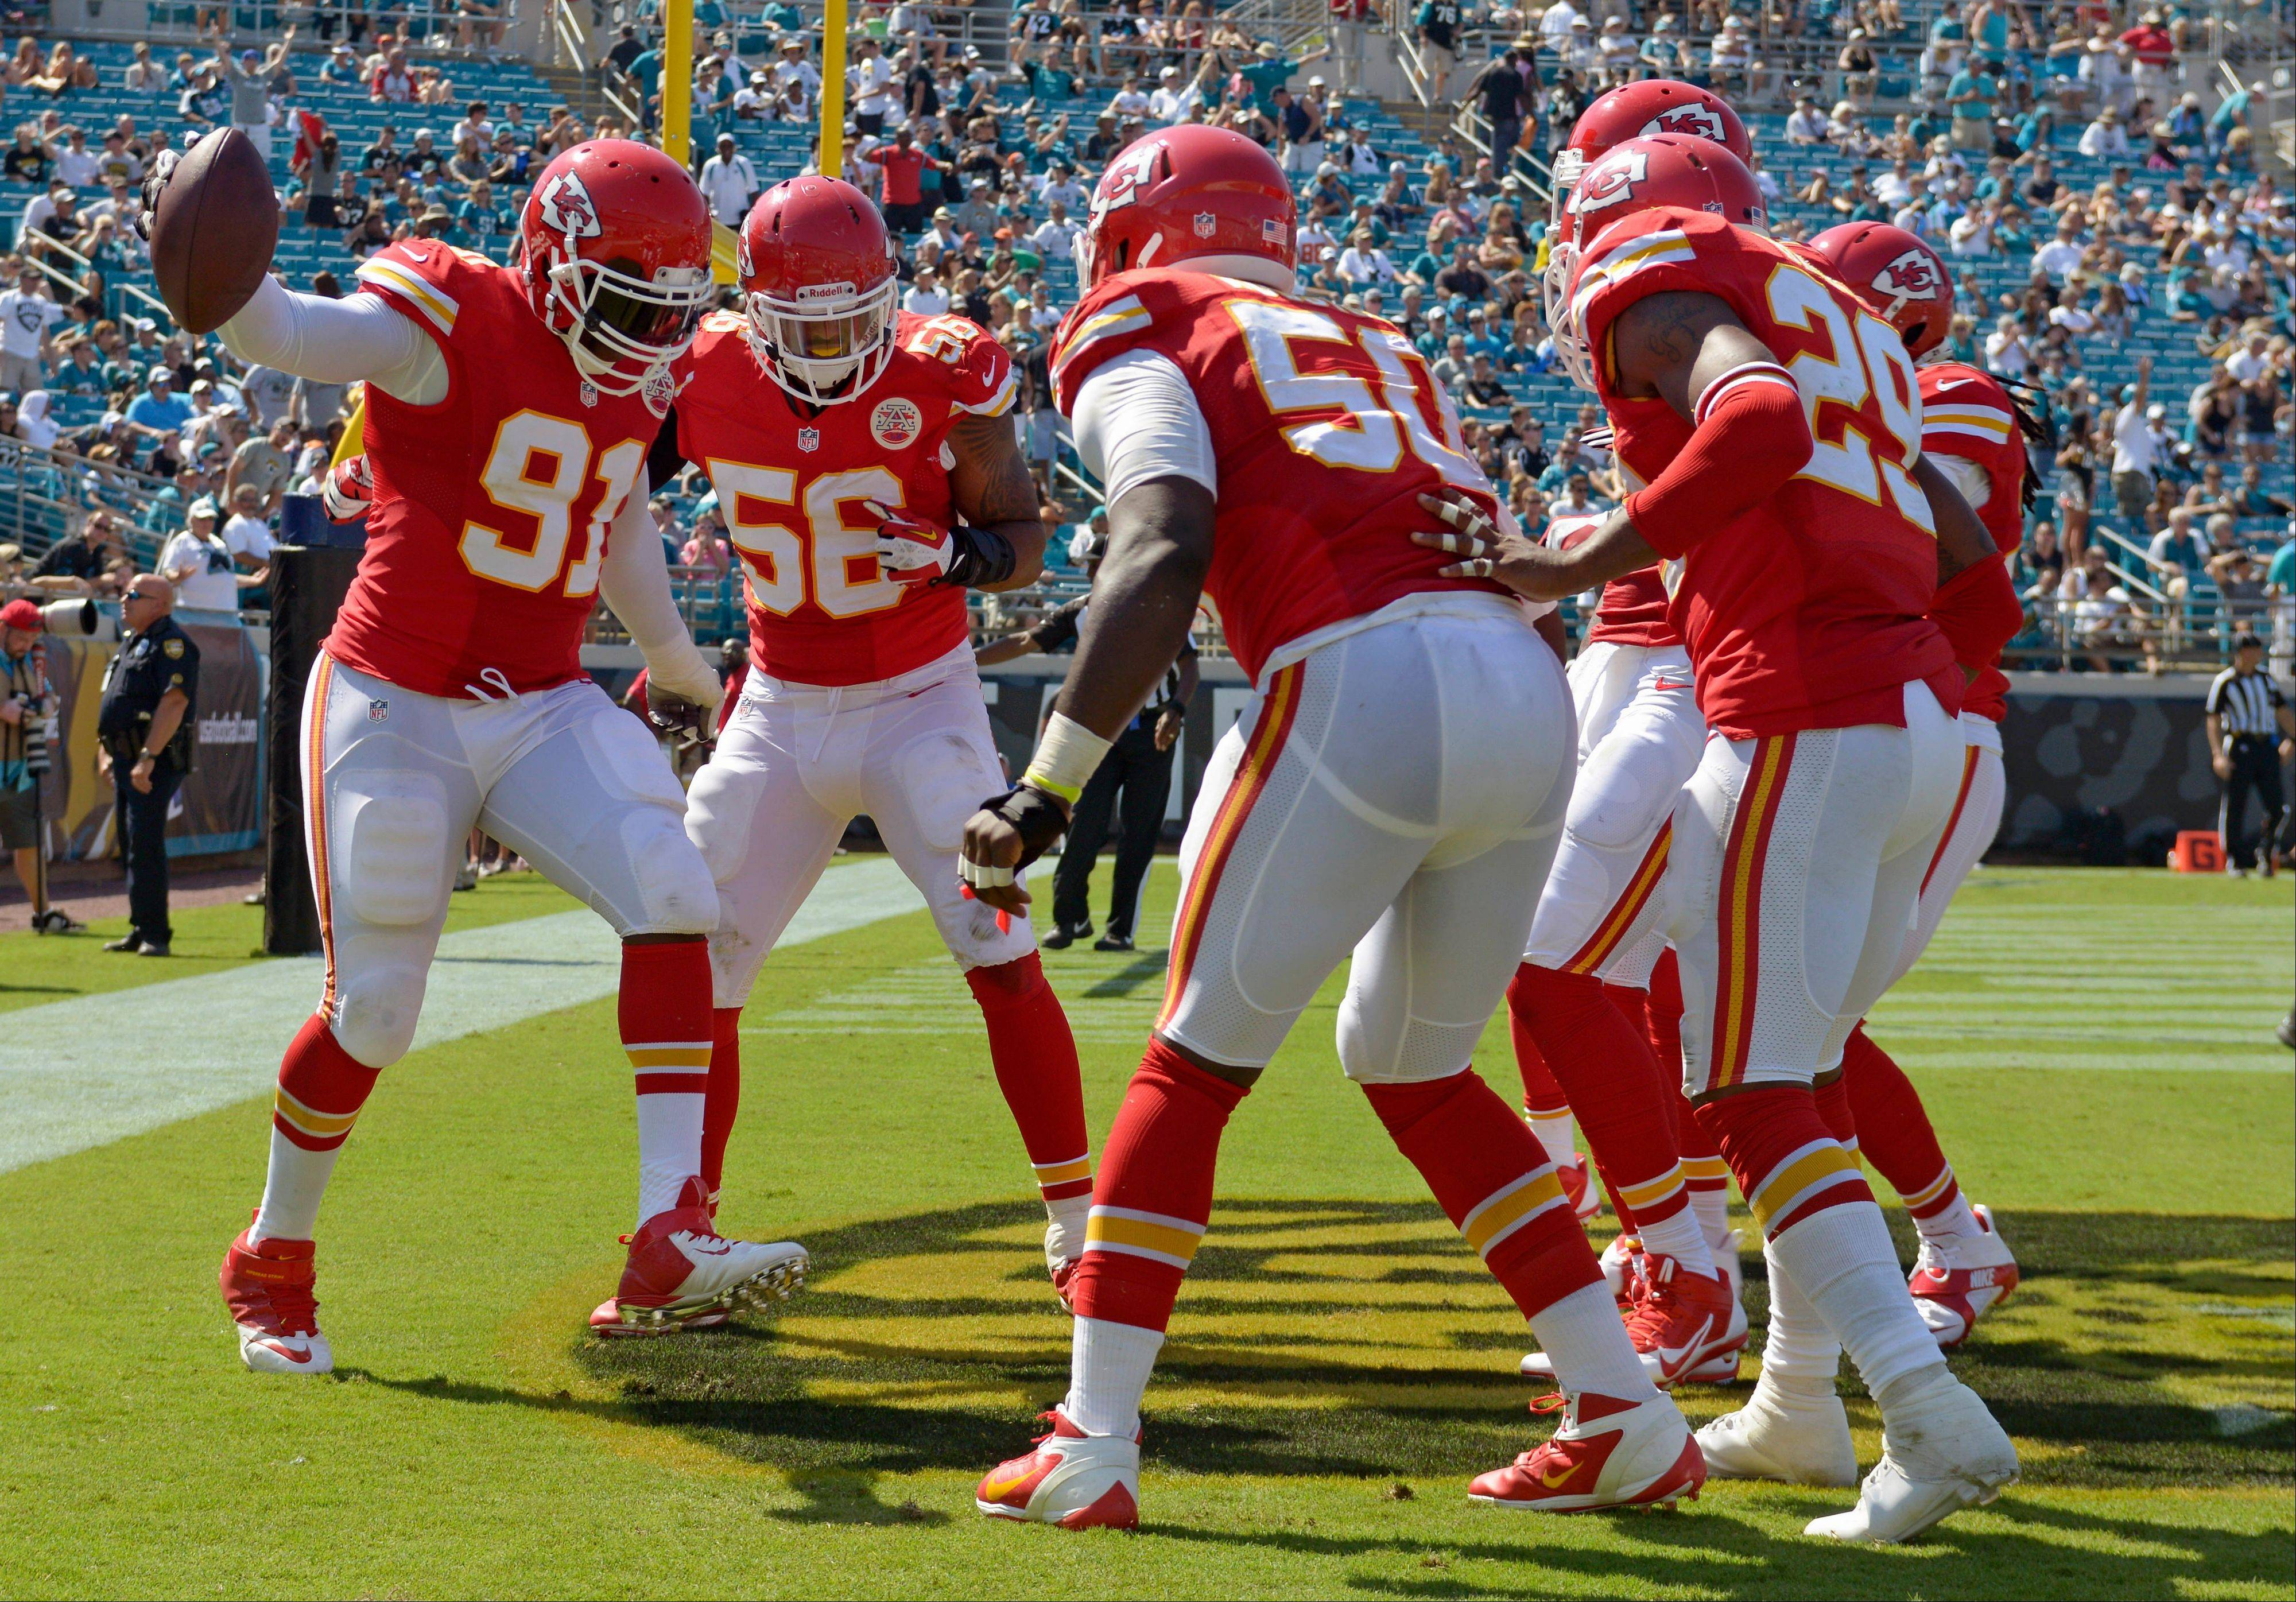 Kansas City Chiefs outside linebacker Tamba Hali (91) celebrates with teammates after intercepting a pass and returning it for a 10-yard touchdown against the Jacksonville Jaguars during the second half of an NFL football game in Jacksonville, Fla., Sunday, Sept. 8, 2013.